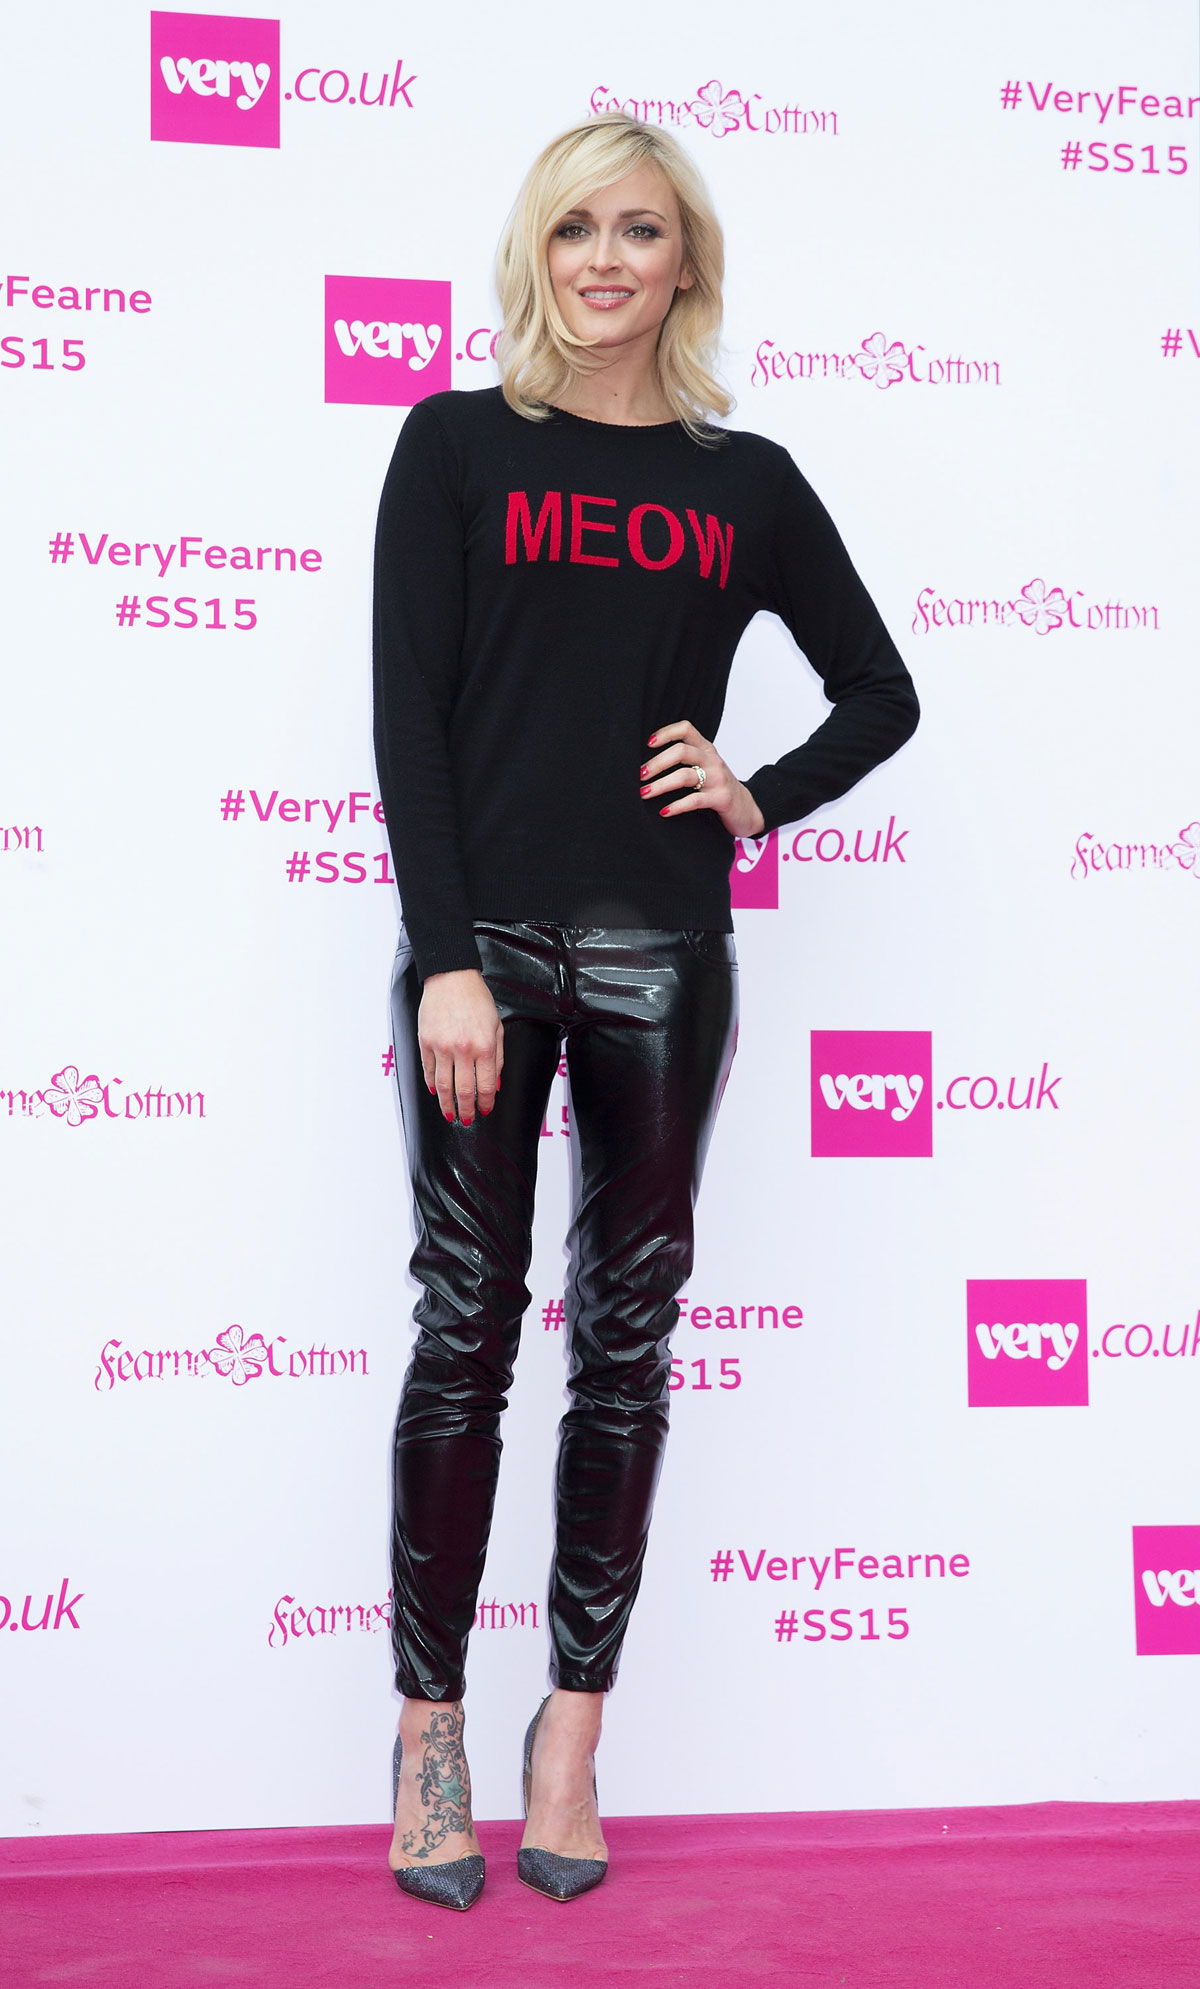 Fearne Cotton attends Fearne Cotton's Very.co.uk Fashion Show